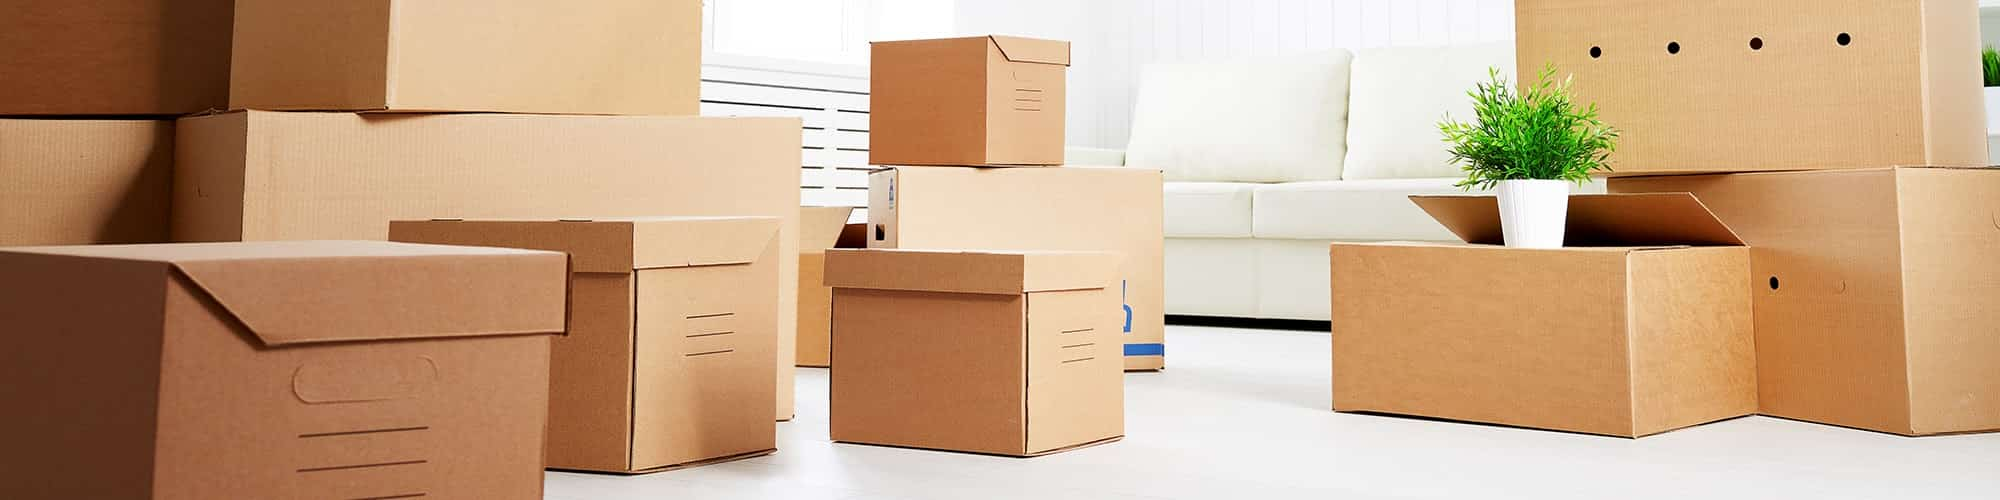 carton-boxes-international-move